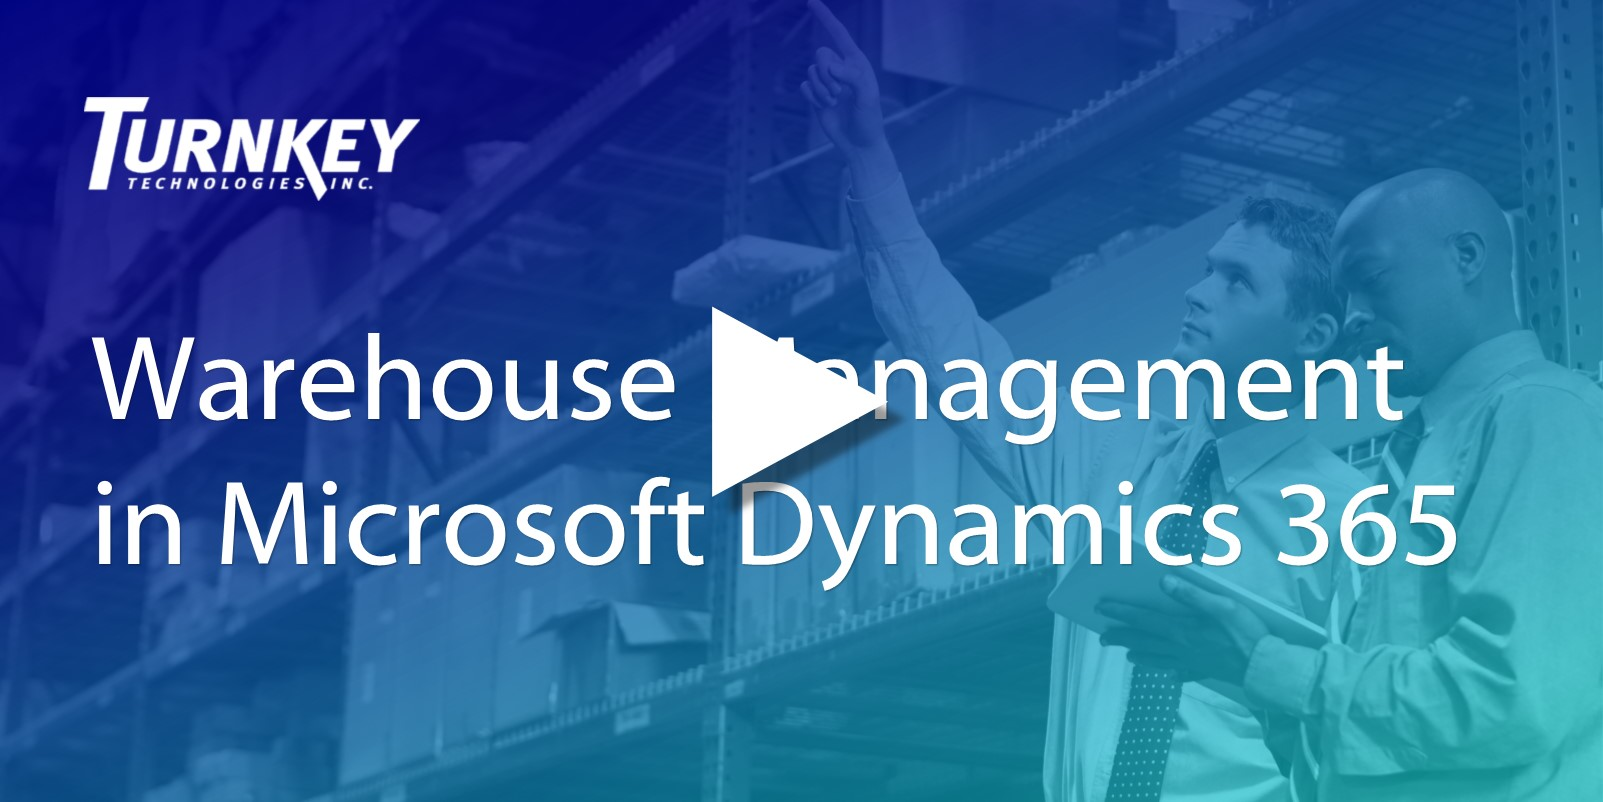 Warehouse Management in Microsoft Dynamics 365